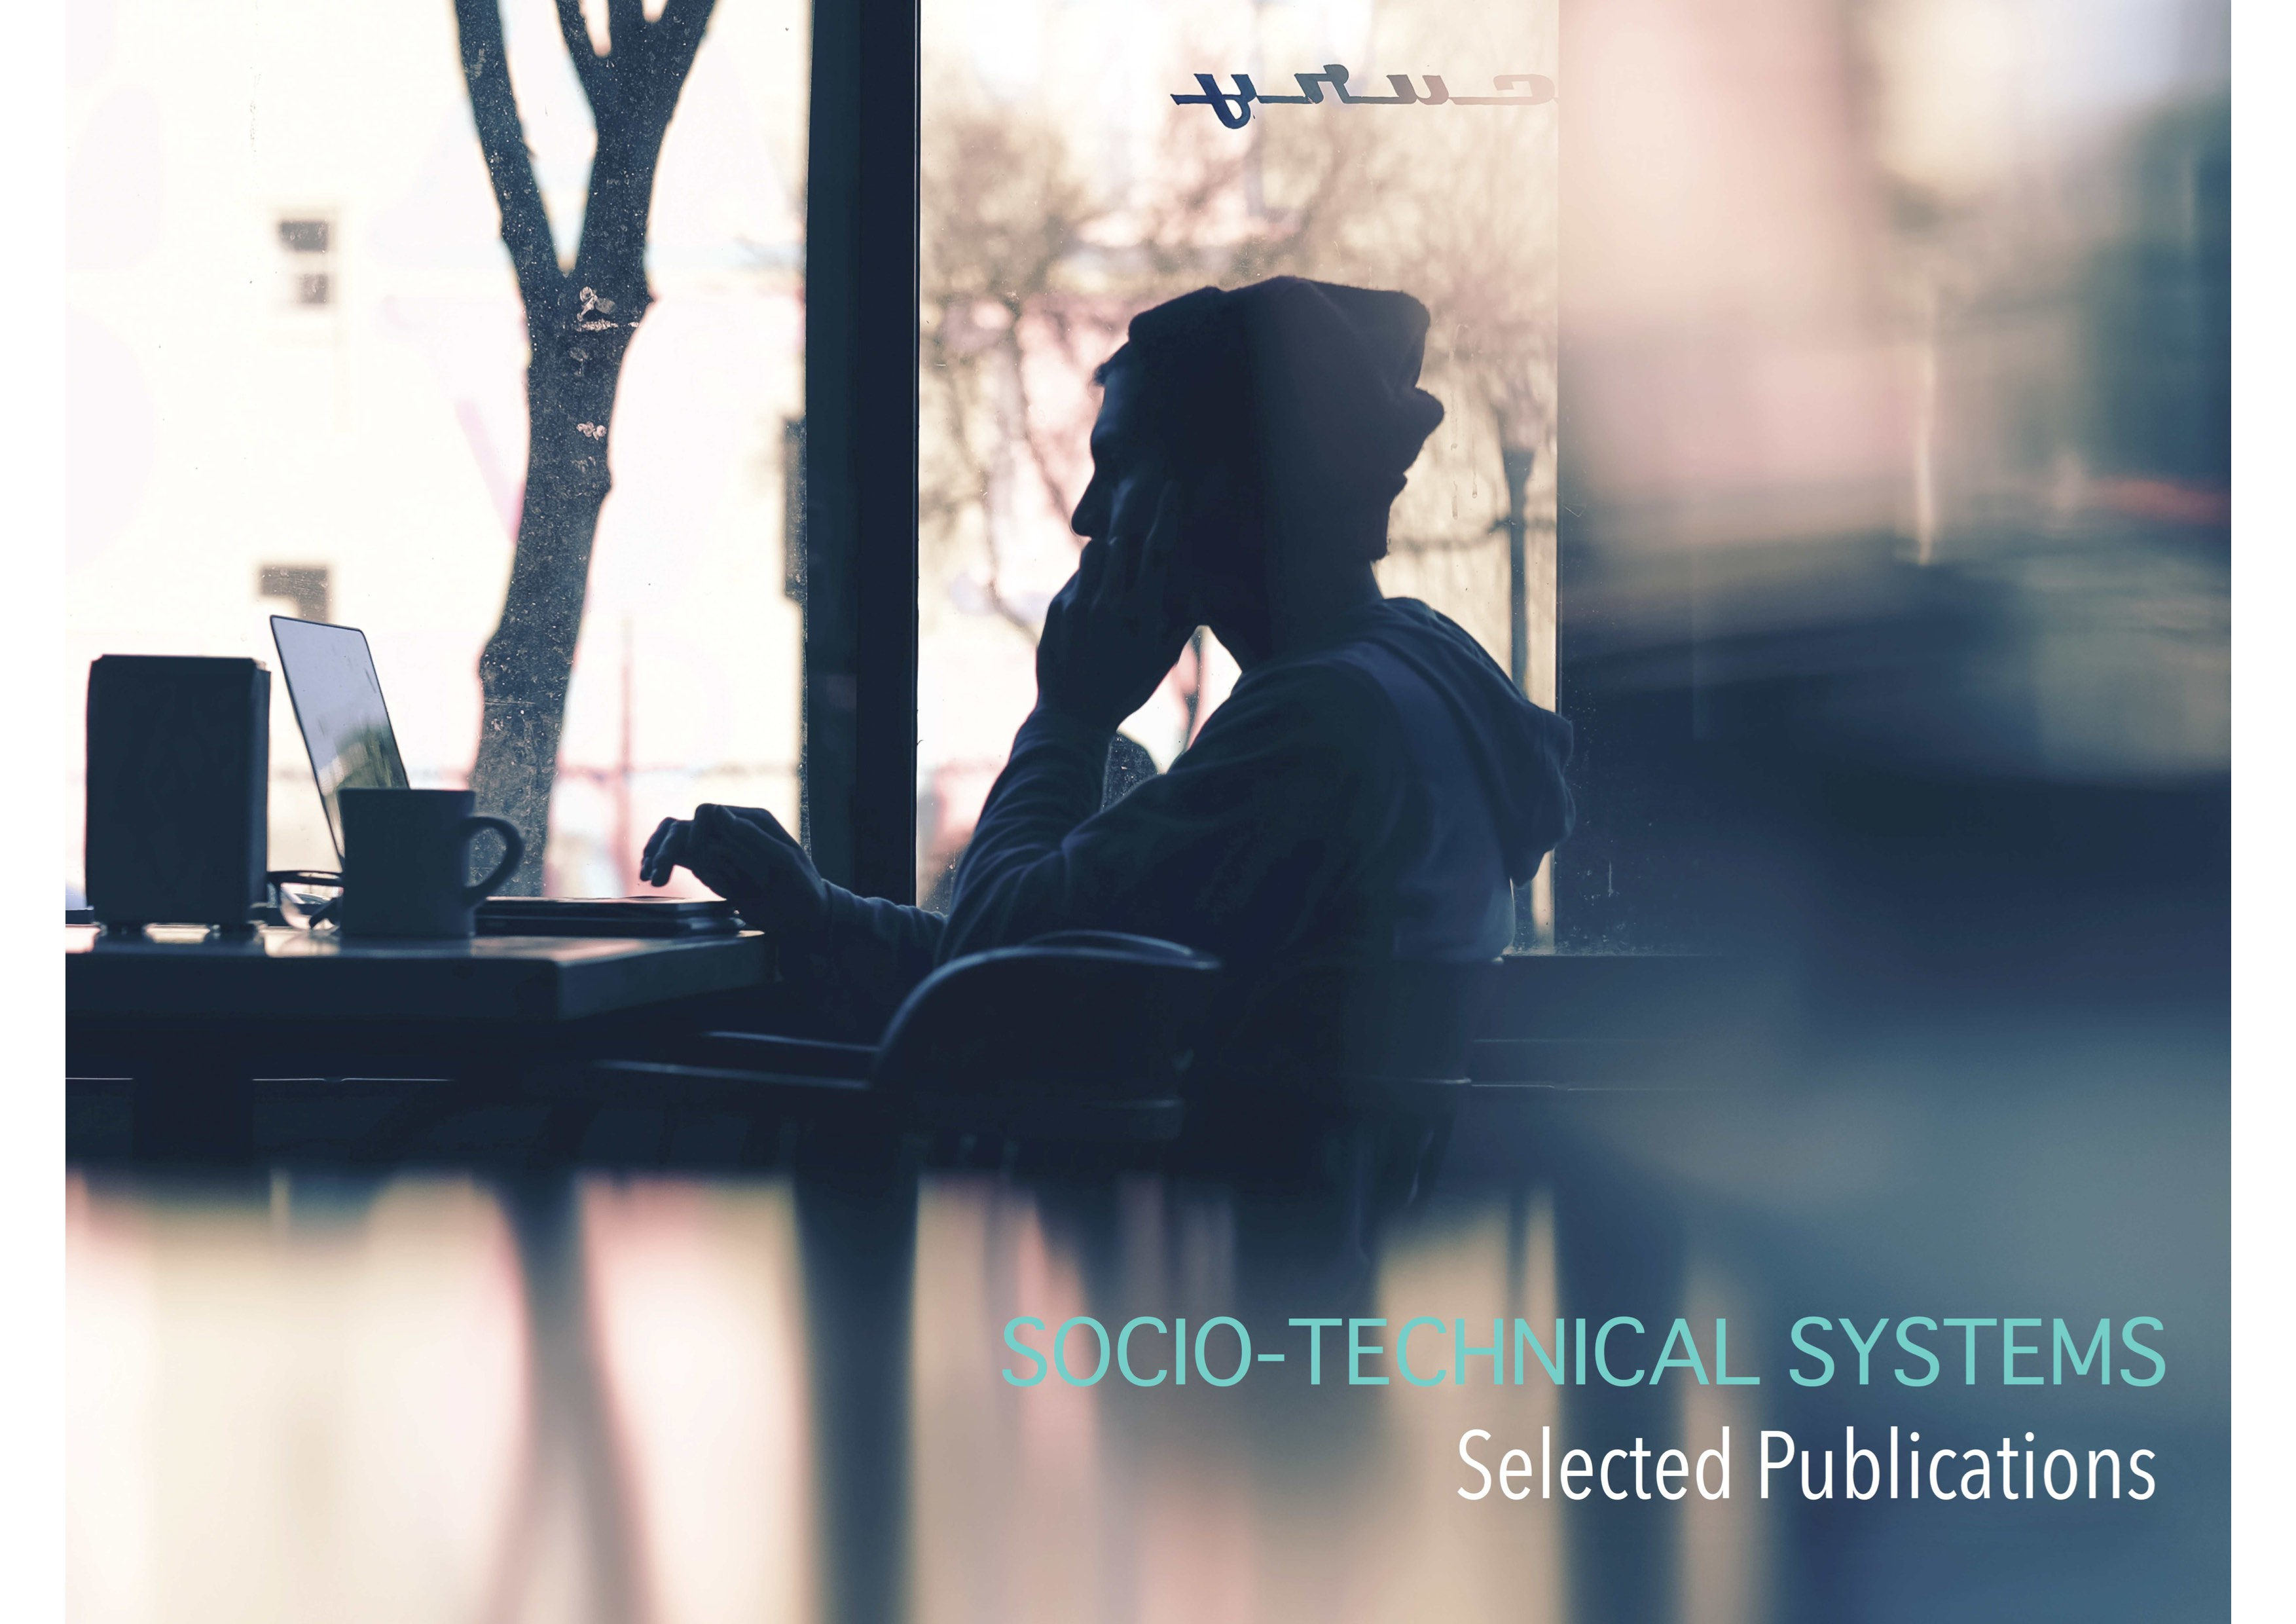 Structure and Dynamics of Online Socio-technological Systems